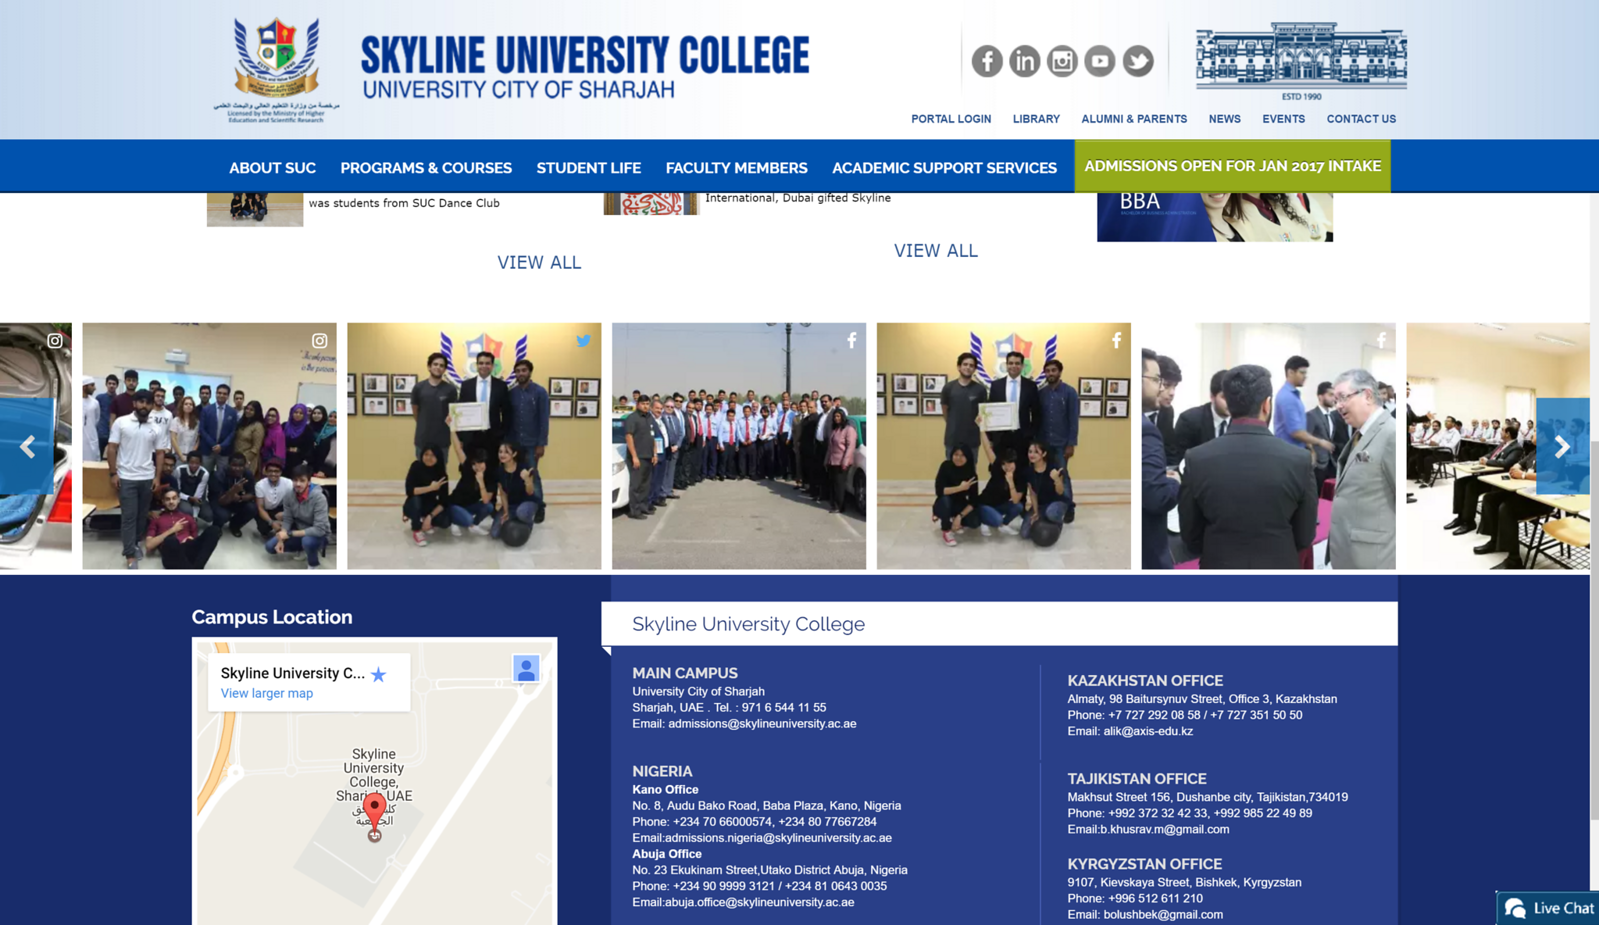 Skyline University College (Sharjah, UAE)